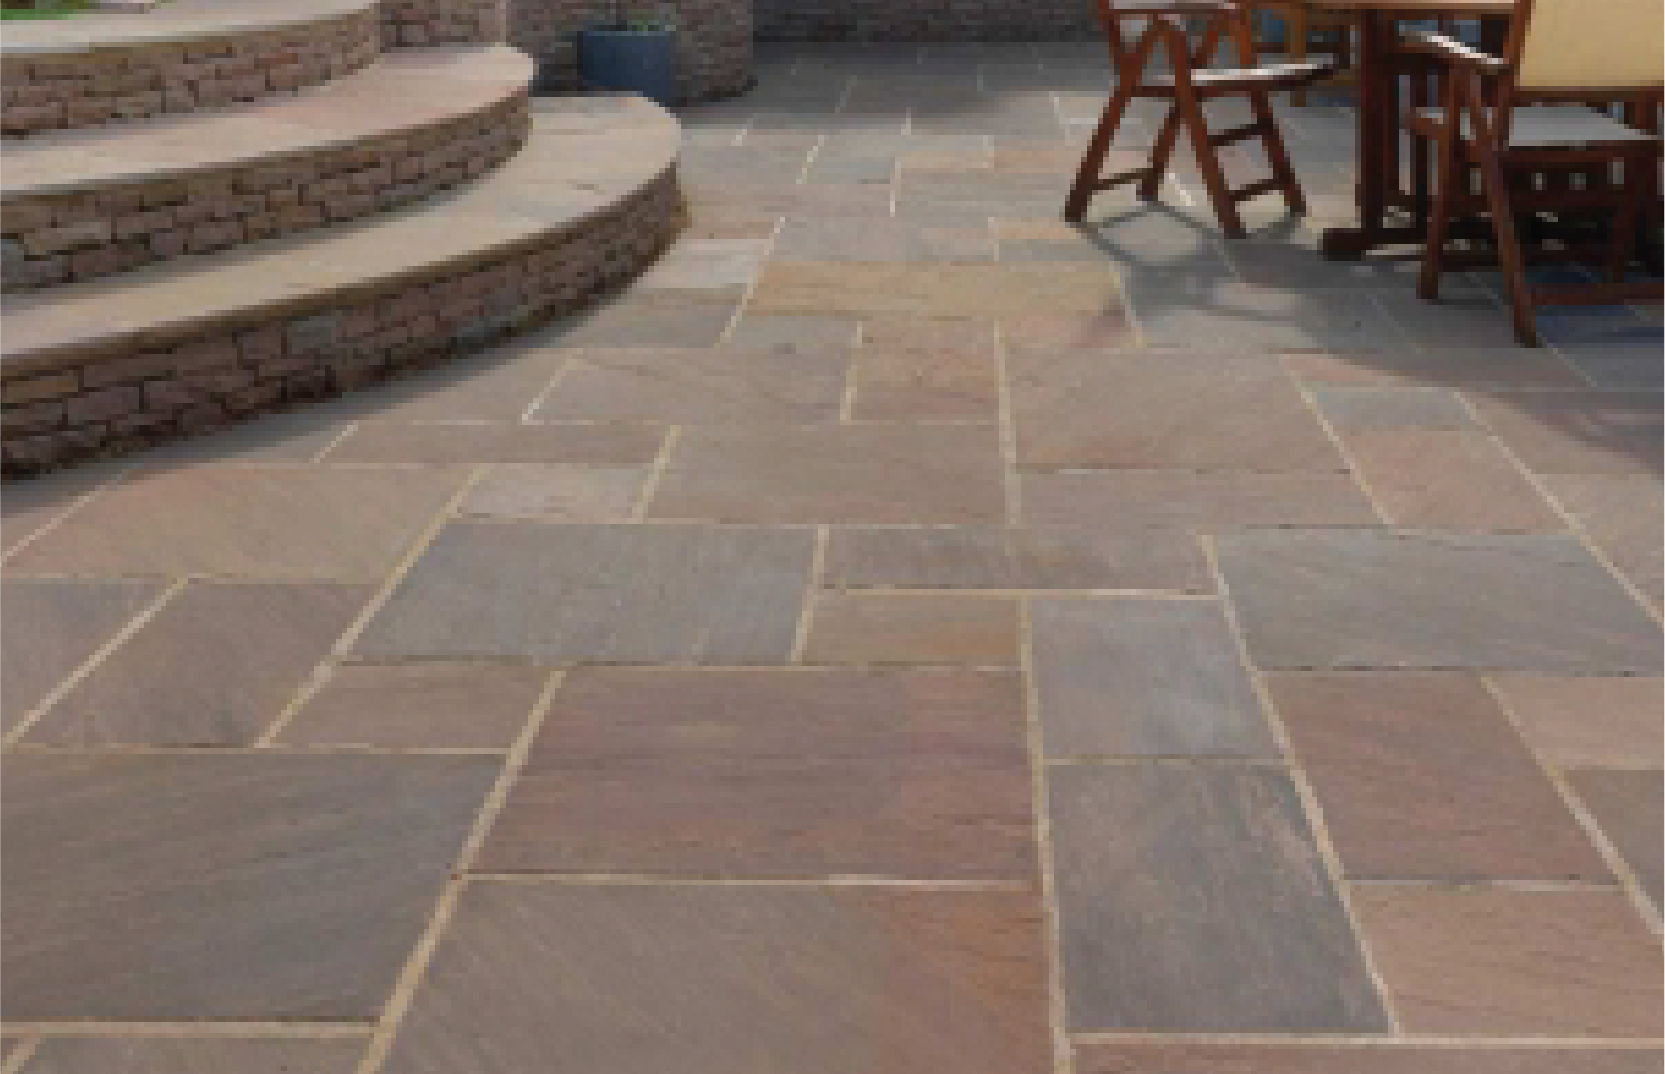 Allow us to reinvent your outdoor space with high-quality outdoor floor tiles, carefully designed to create a sense of space and harmony. Outdoor tiles are created practically with beneficial characteristics including; frost resistance, stain-proofing technology, slip-resistance and scratch resistance.